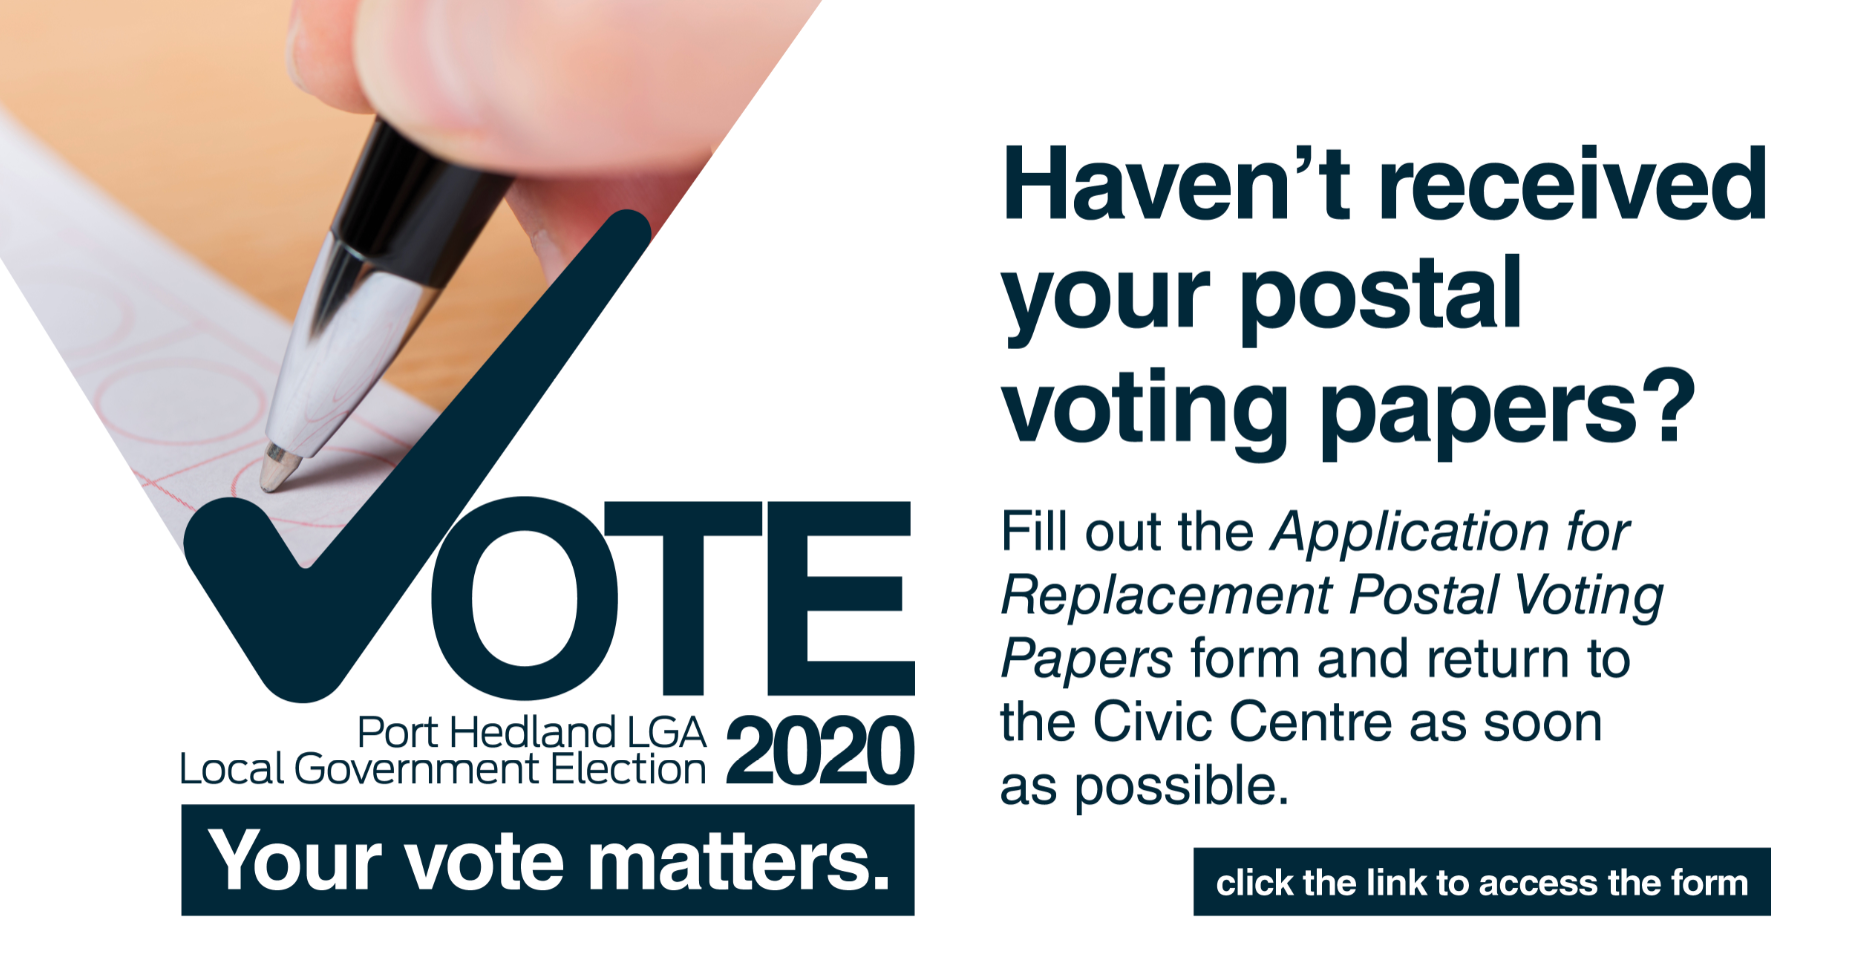 Haven't received your postal voting papers?